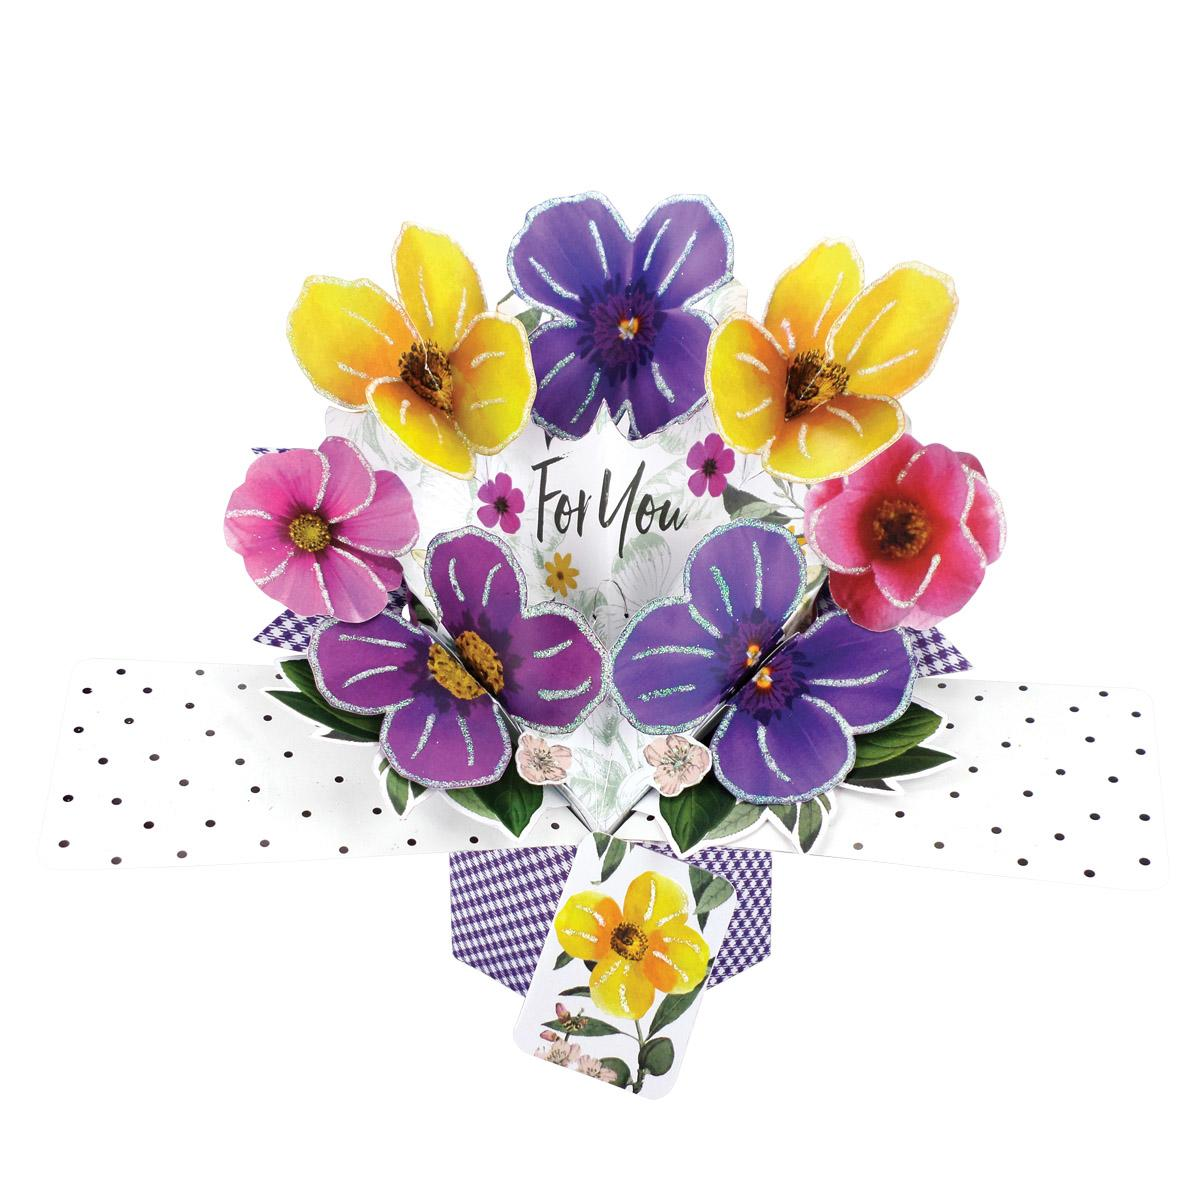 Pansies Pop Up Card Shown How The Recipient Will Receive It